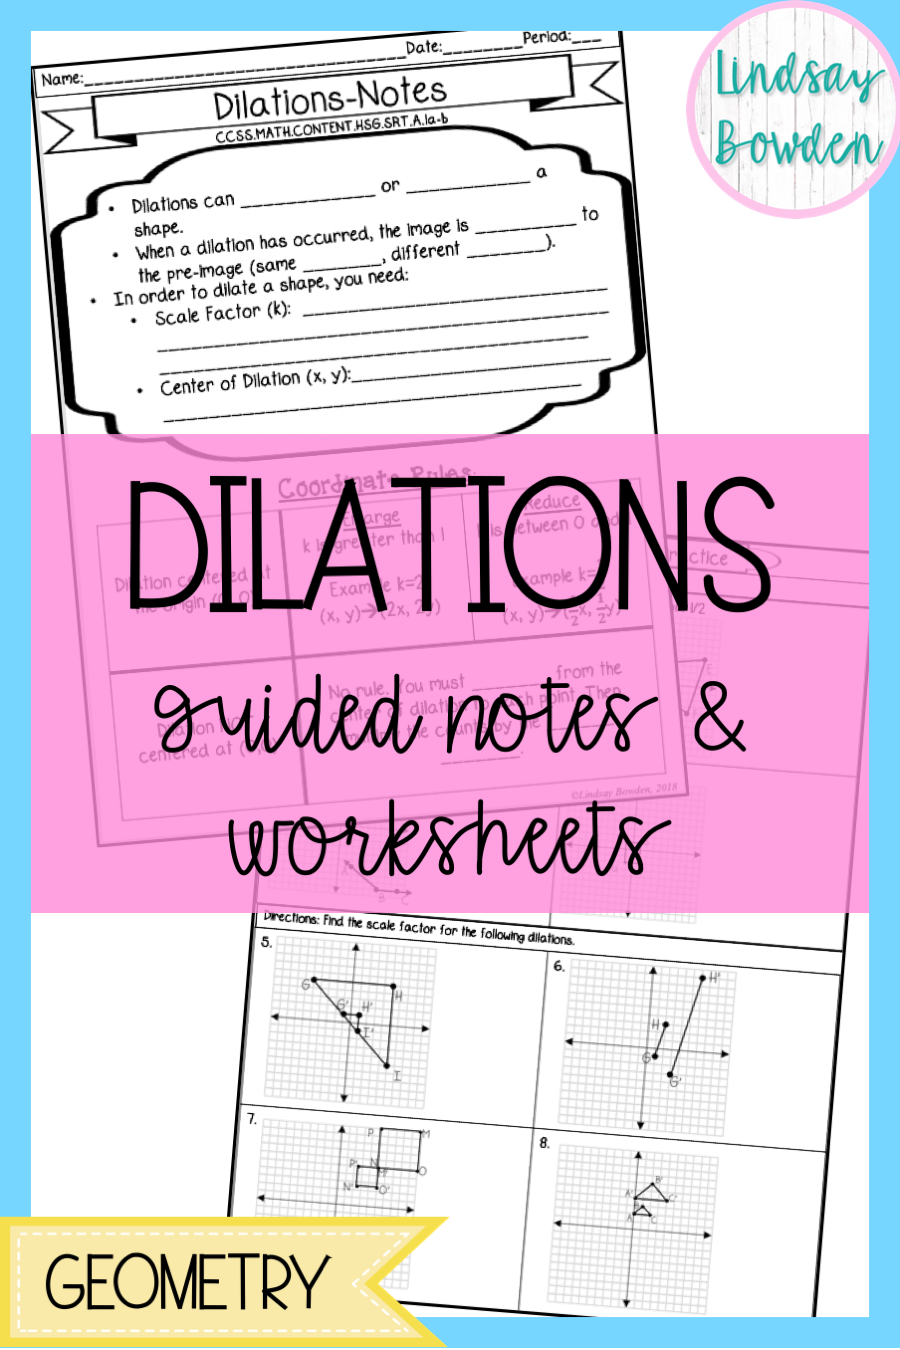 Dilations Guided Notes And Worksheet High School Geometry Notes Geometry Lessons Geometry High School